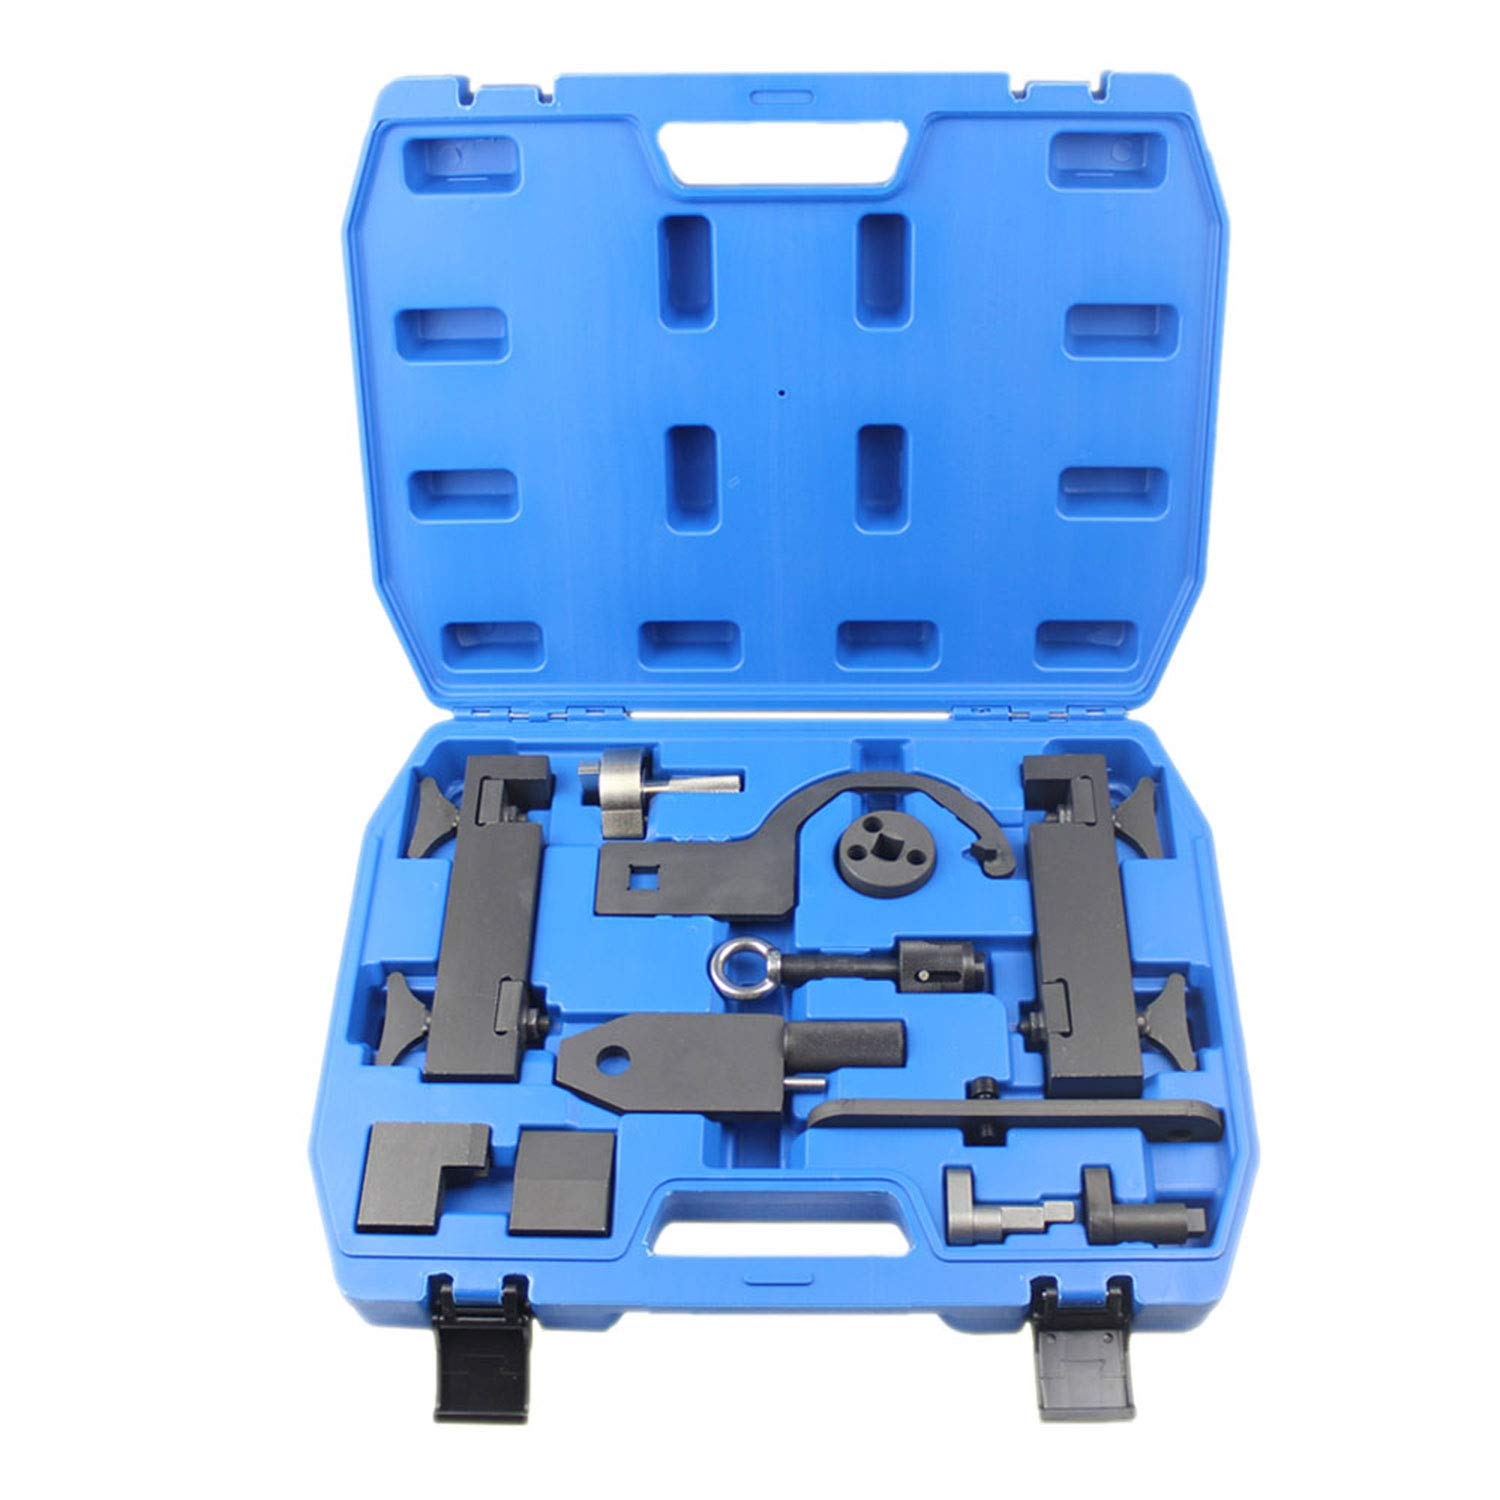 V6 V8 5.0lt BELEY Crankshaft Puller Pulley Tool Set Compatible for Jaguar Land Rover 3.0lt